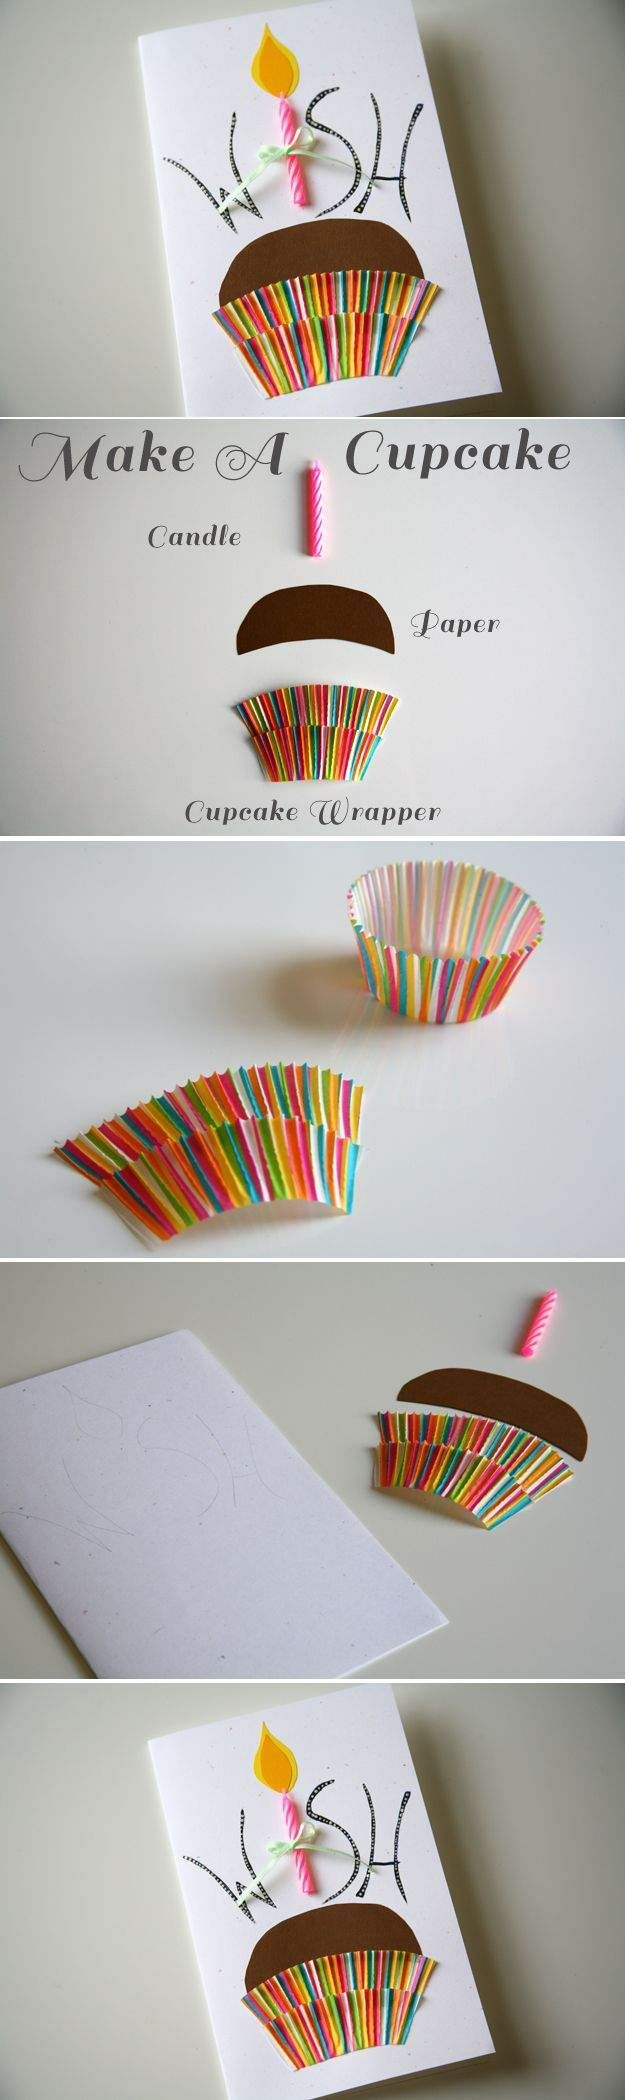 Clever handmade cupcake birthday card using an